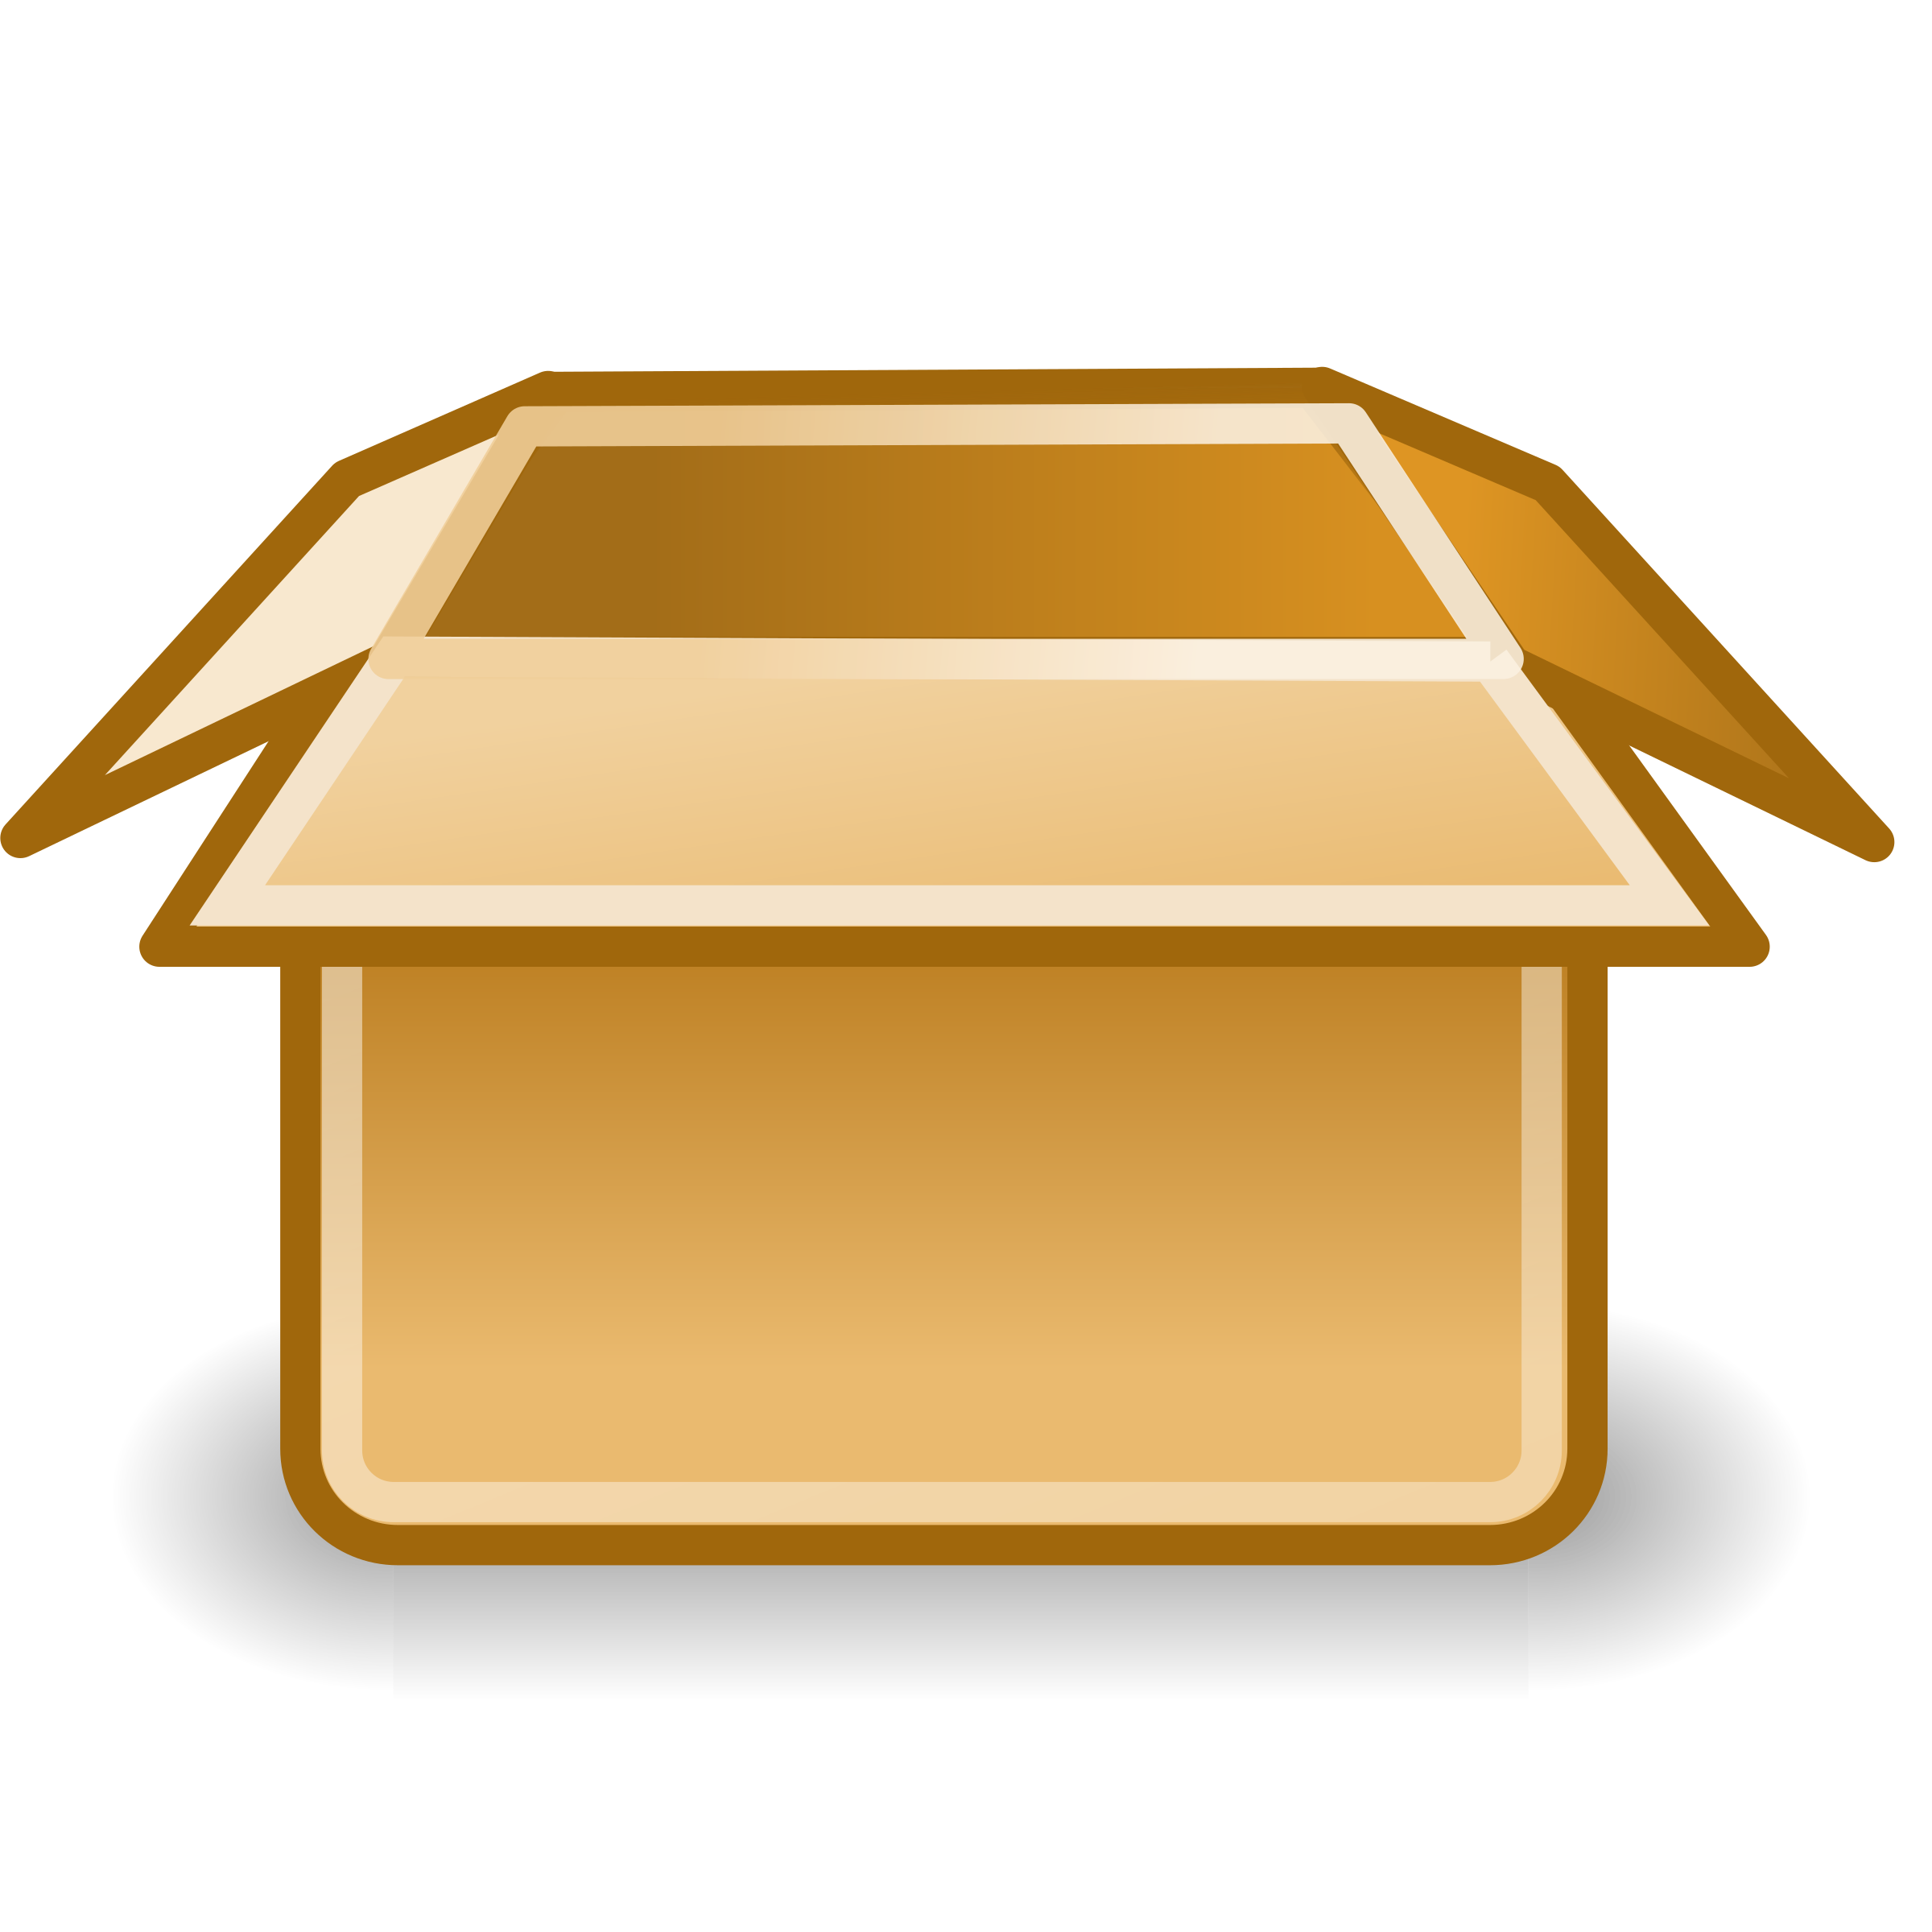 Empty house clipart jpg library library Clipart - Empty cardboard box jpg library library